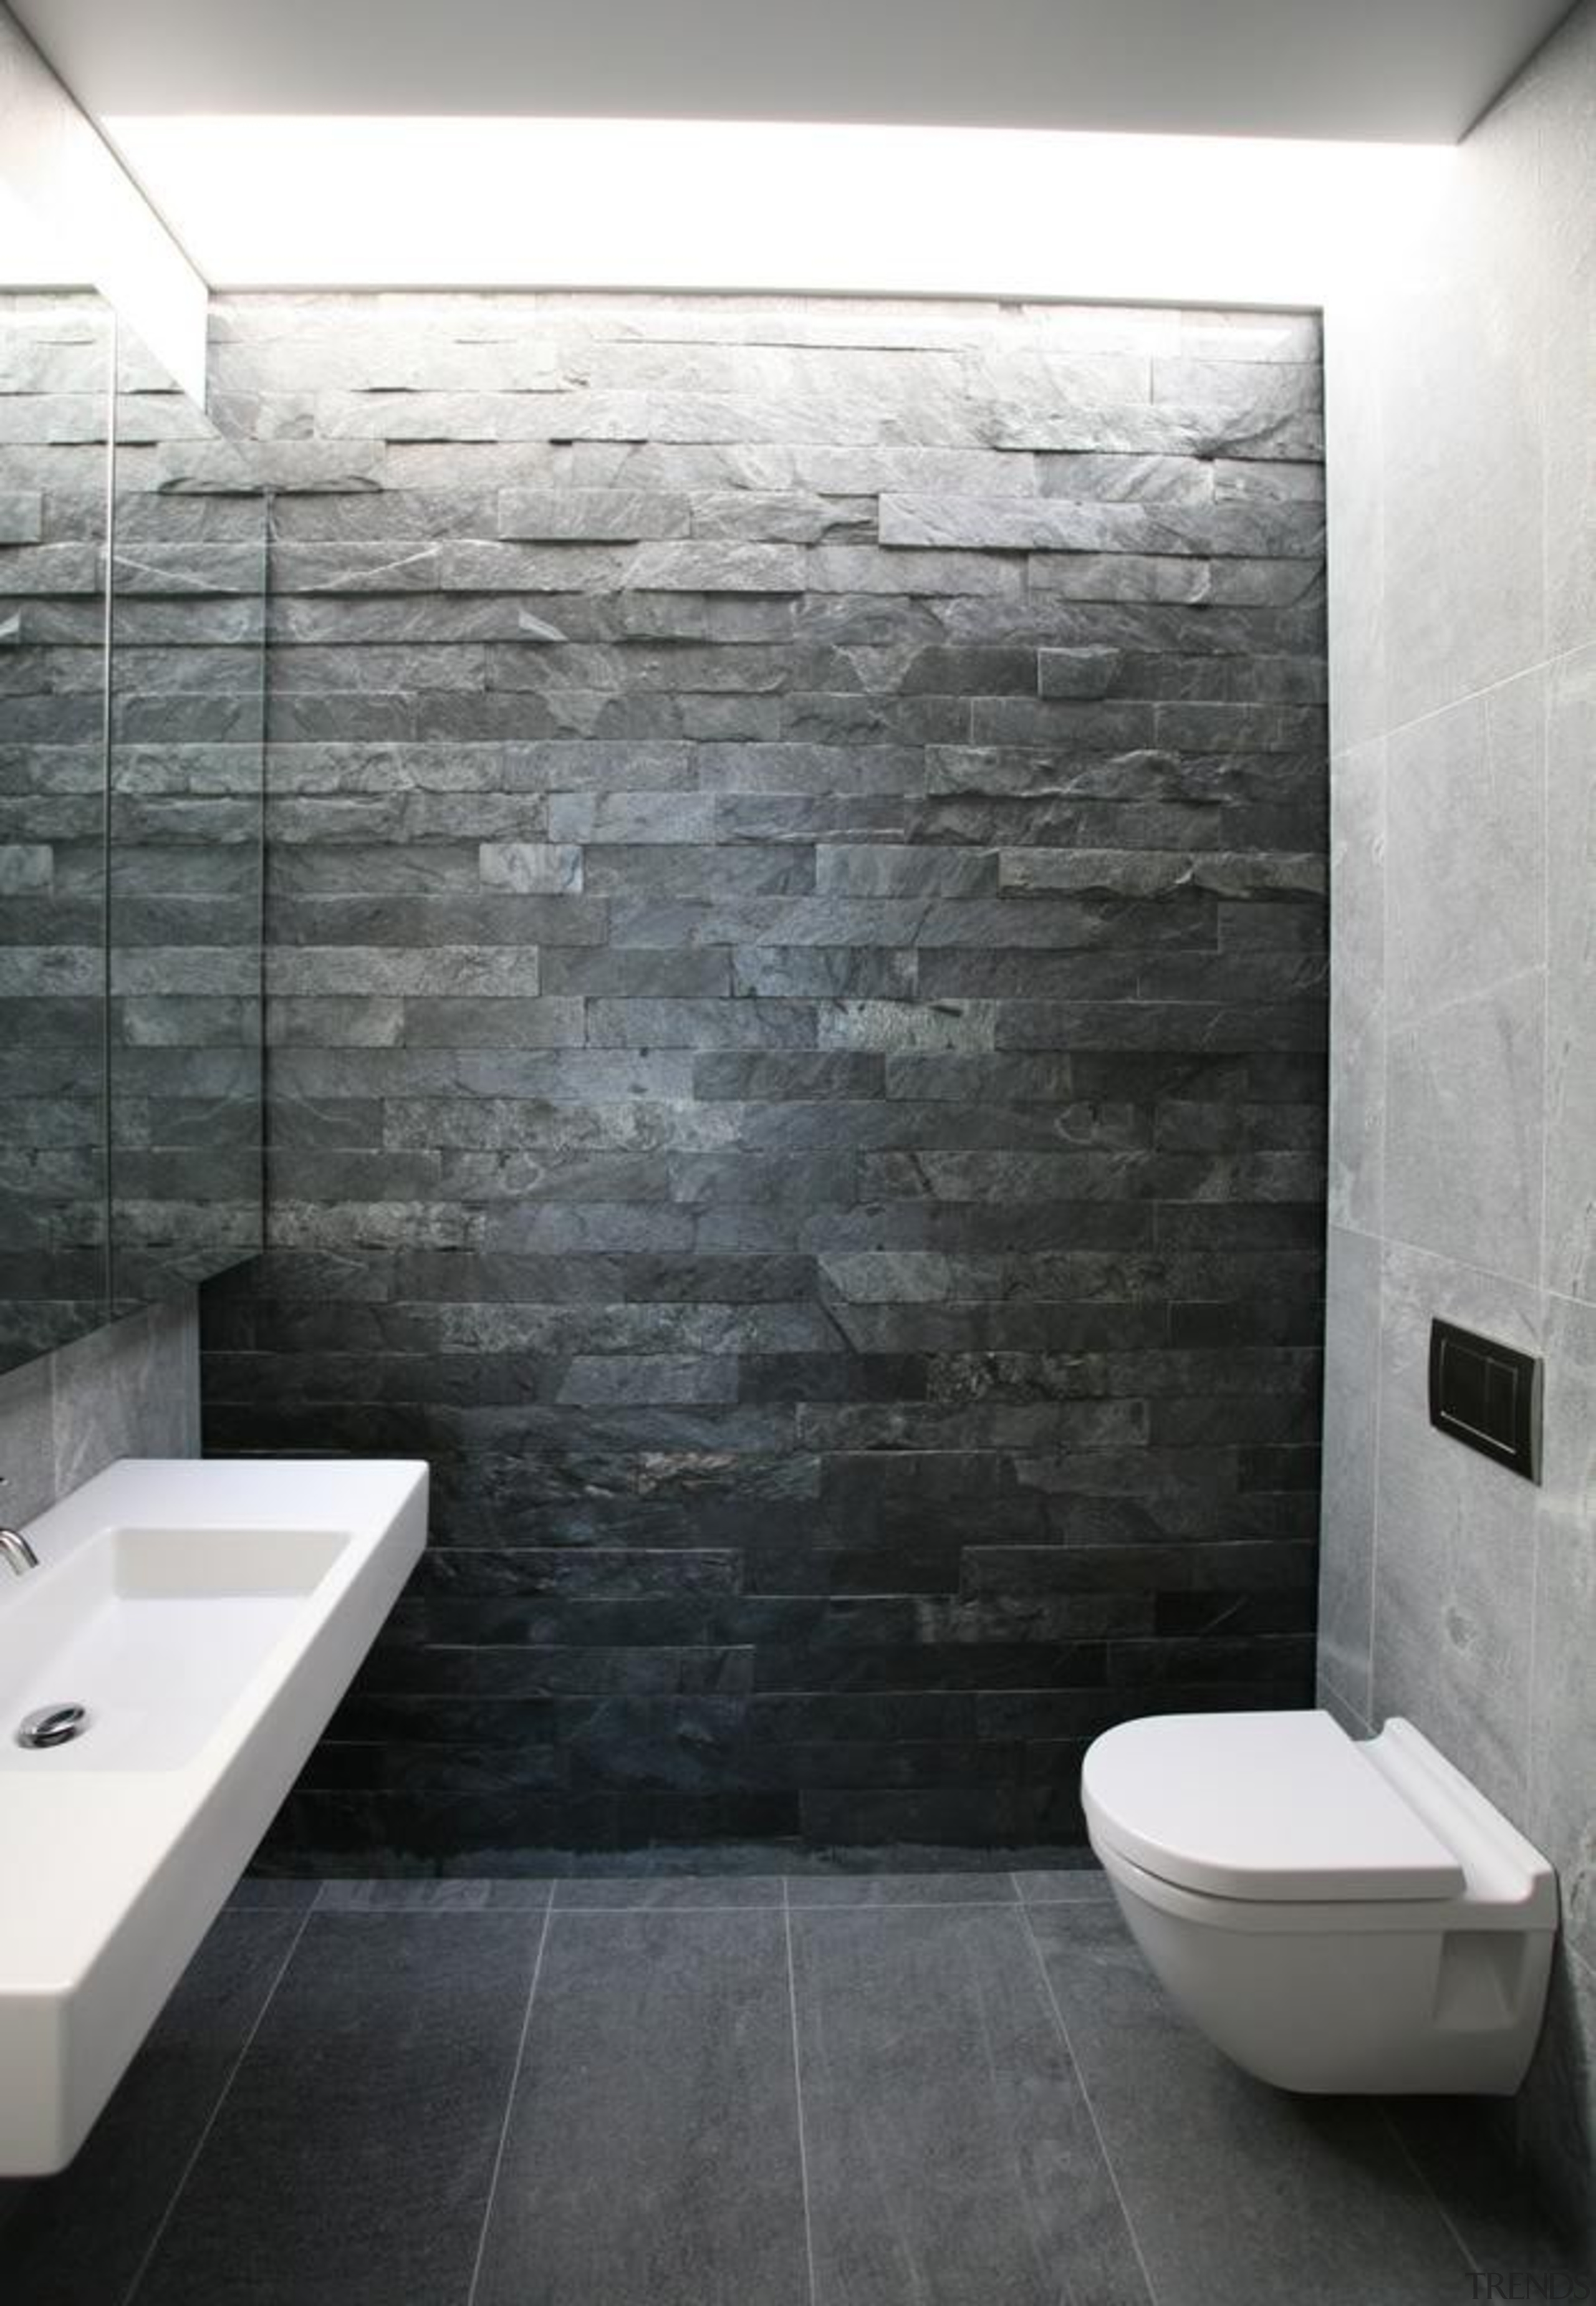 Christchurch House - Christchurch House - architecture | architecture, bathroom, floor, interior design, plumbing fixture, product design, room, tap, tile, wall, gray, black